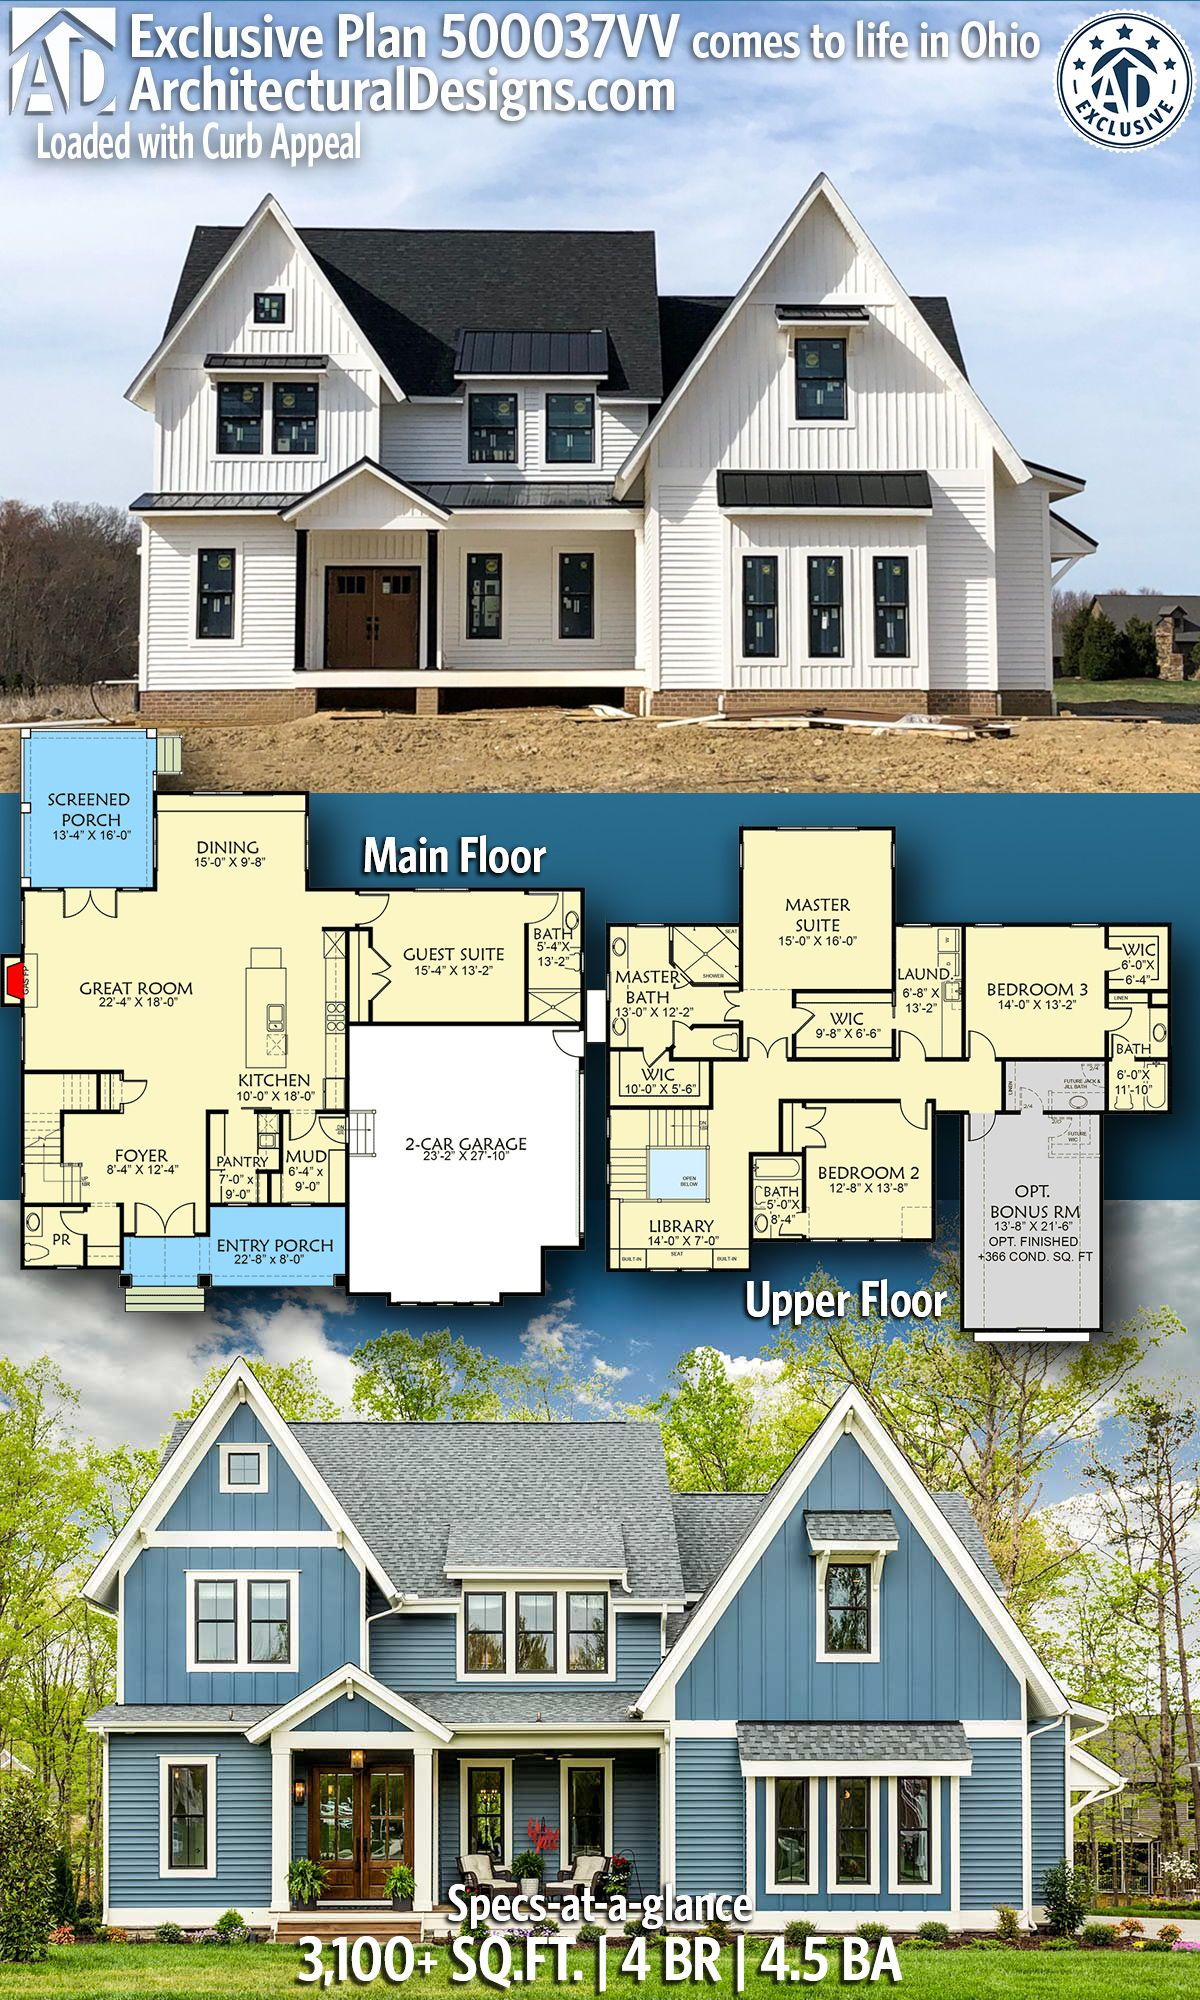 Plan 500037vv Loaded With Curb Appeal Exclusive House Plan House Plans Home Design Plans